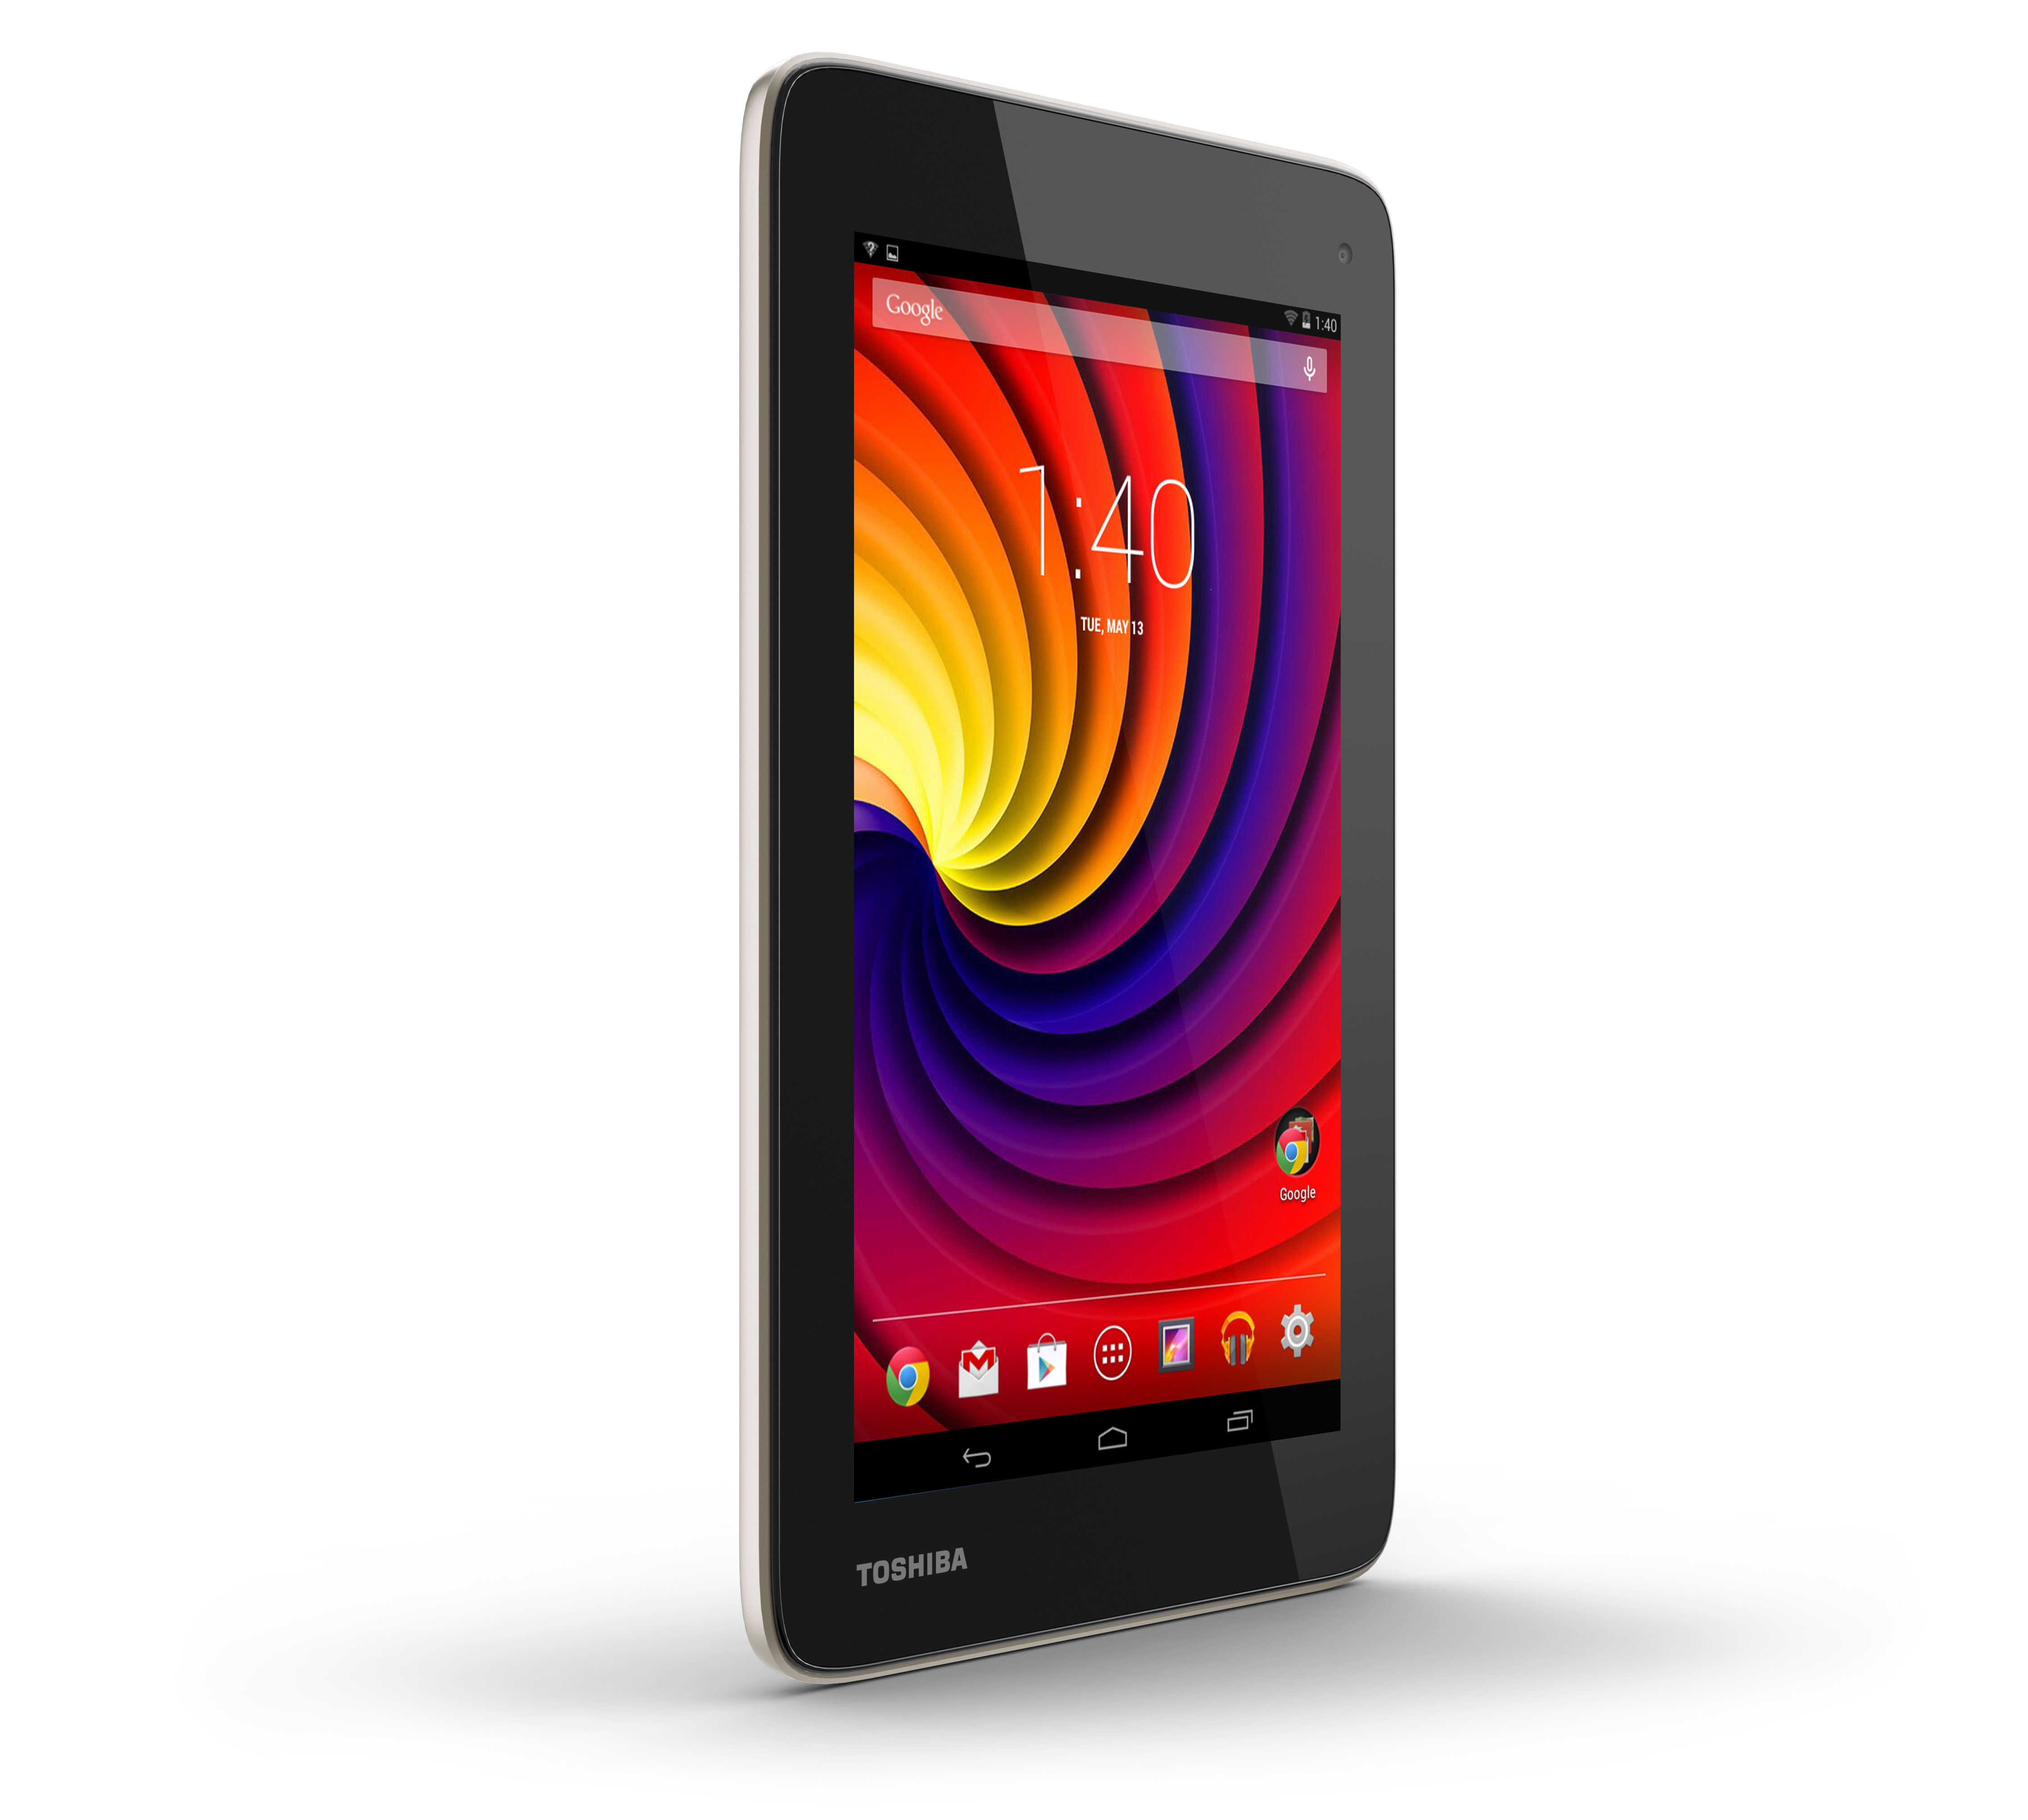 Toshiba's Excite Go is a seven-inch Android 4.4-based tablet that offers a comprehensive and reliable tablet experience at a fraction of the cost, starting at just $109.99 MSRP. (Photo: Business Wire)